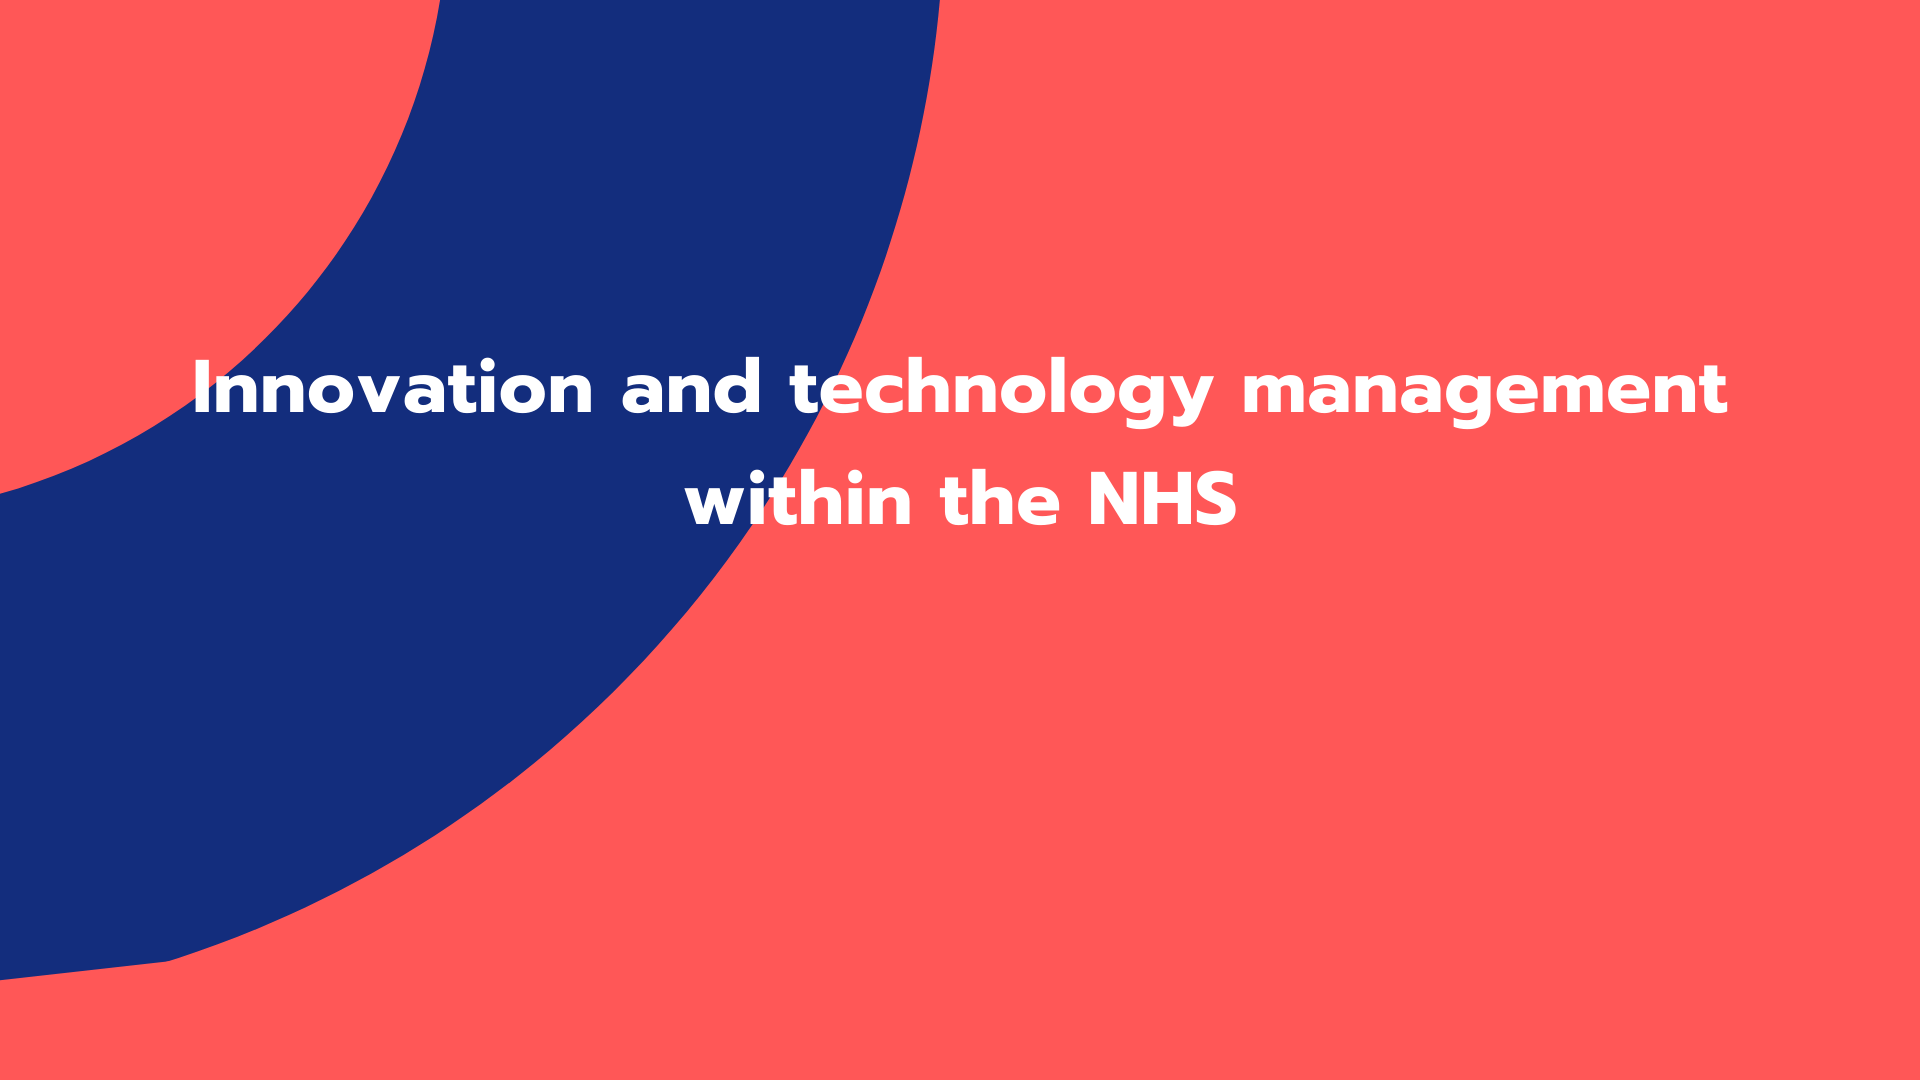 Innovation and technology management within the NHS